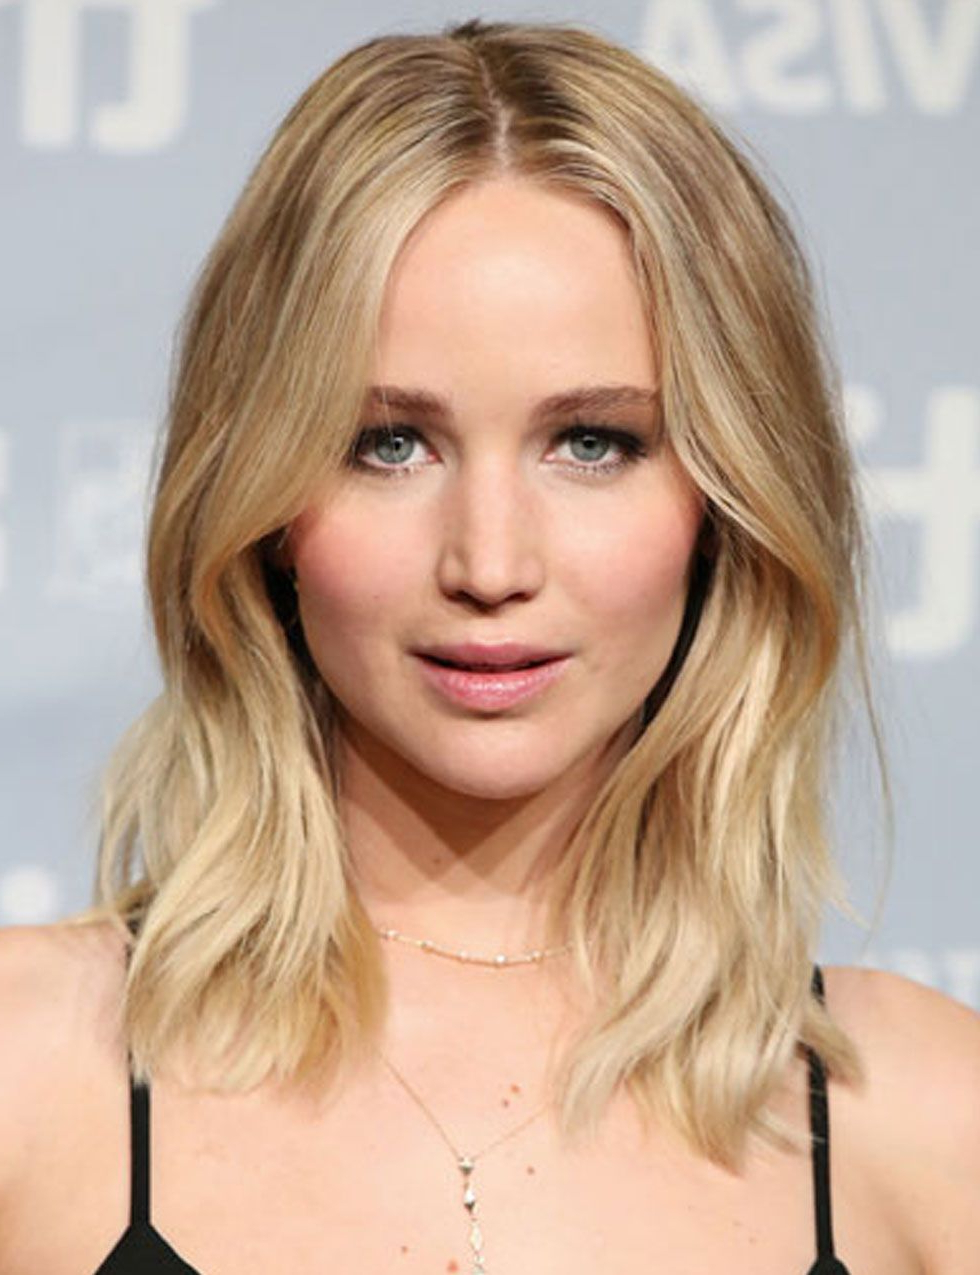 Best Hairstyles For Fine Hair – 18 Celebs With Fine Hair Throughout The Finest Haircuts For Fine Hair (View 12 of 20)